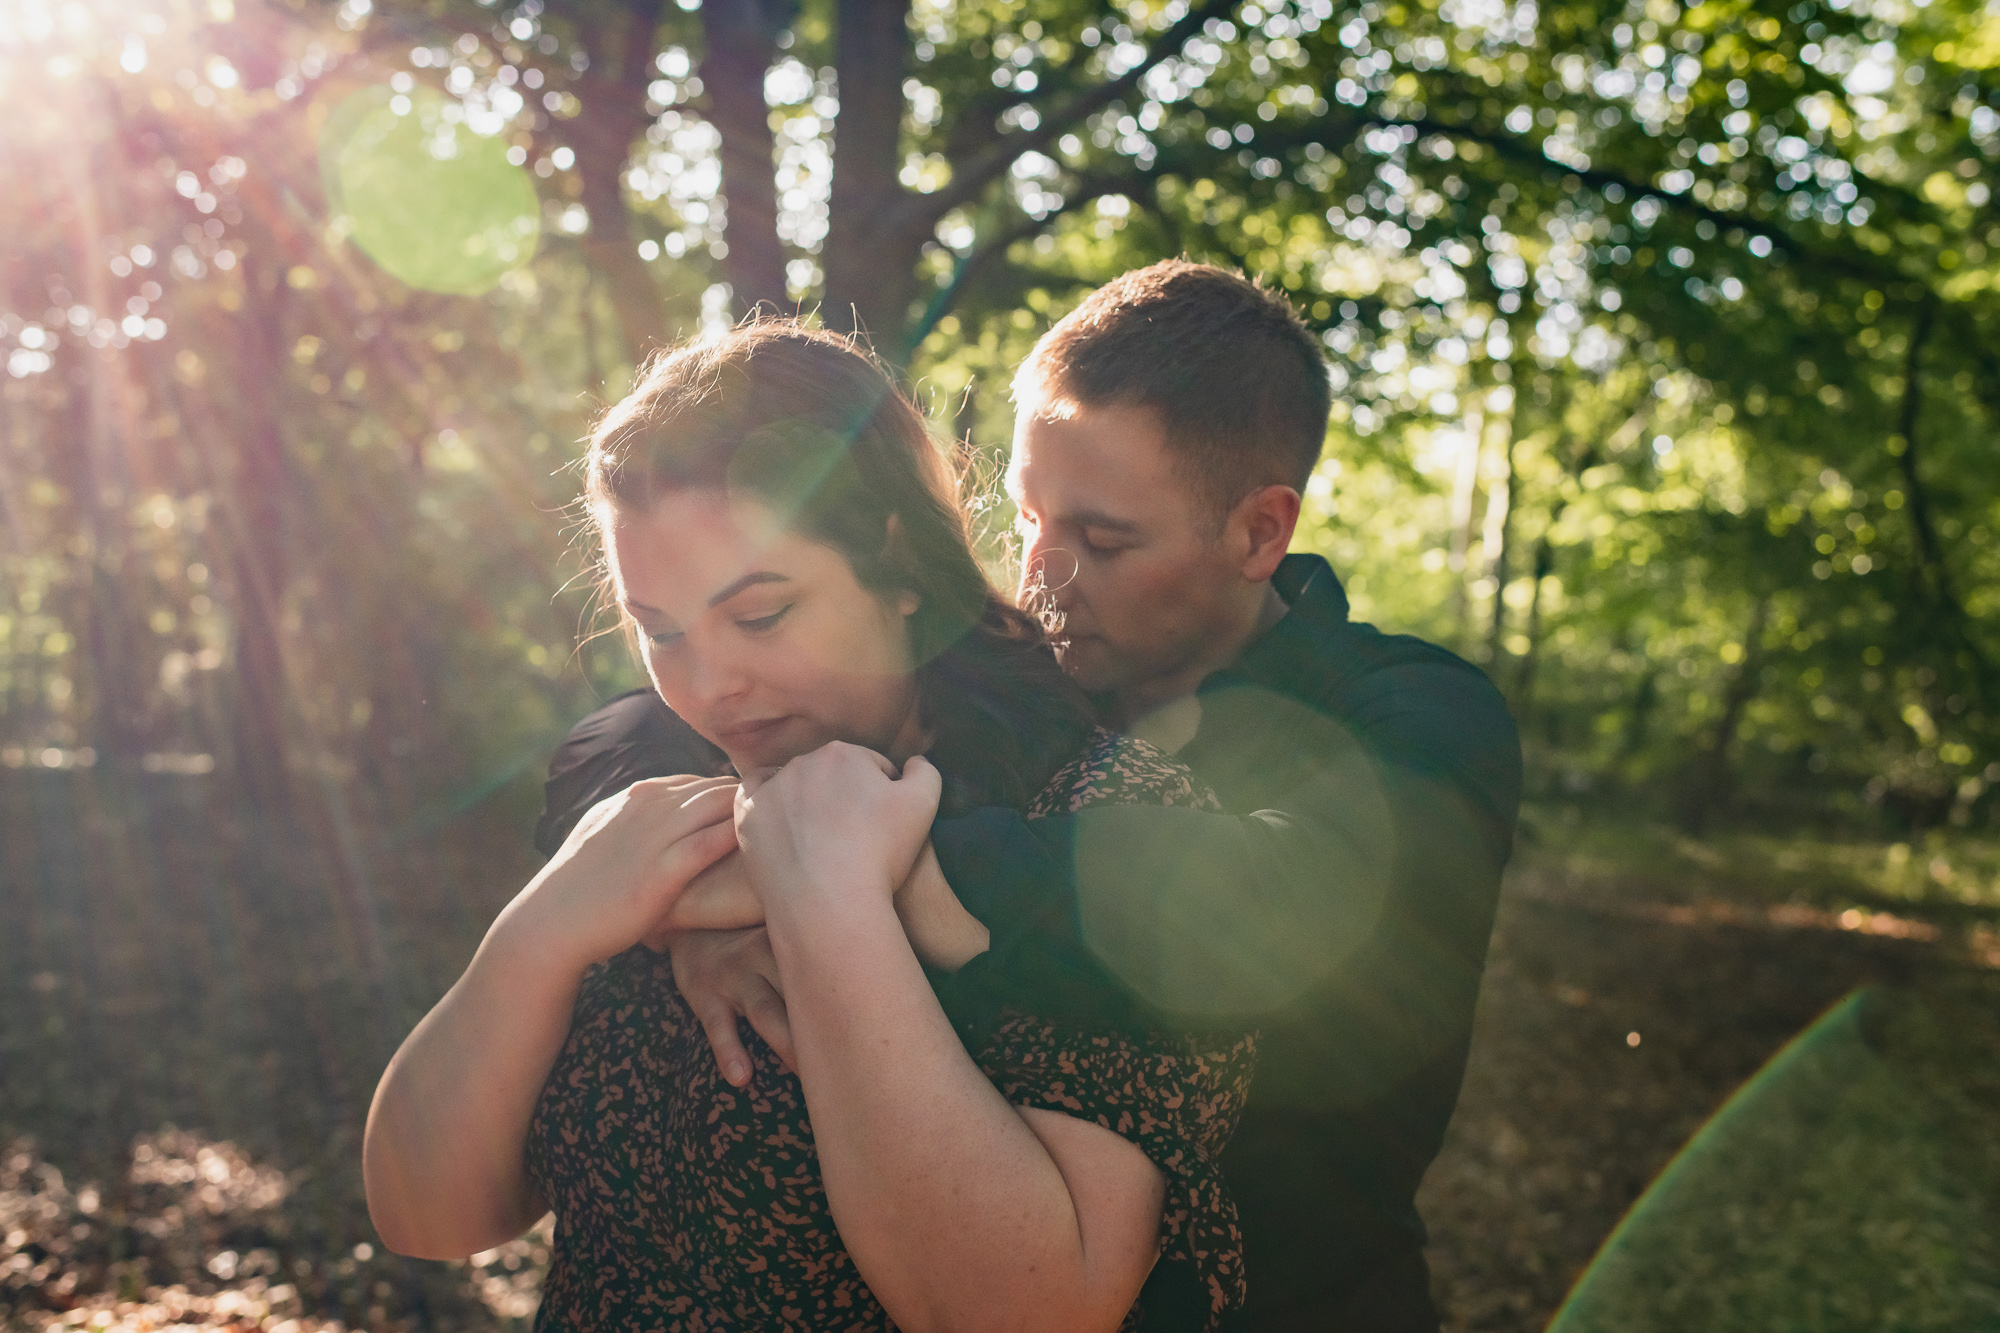 Wellington Wood pre-wedding shoot – Jess & Callum